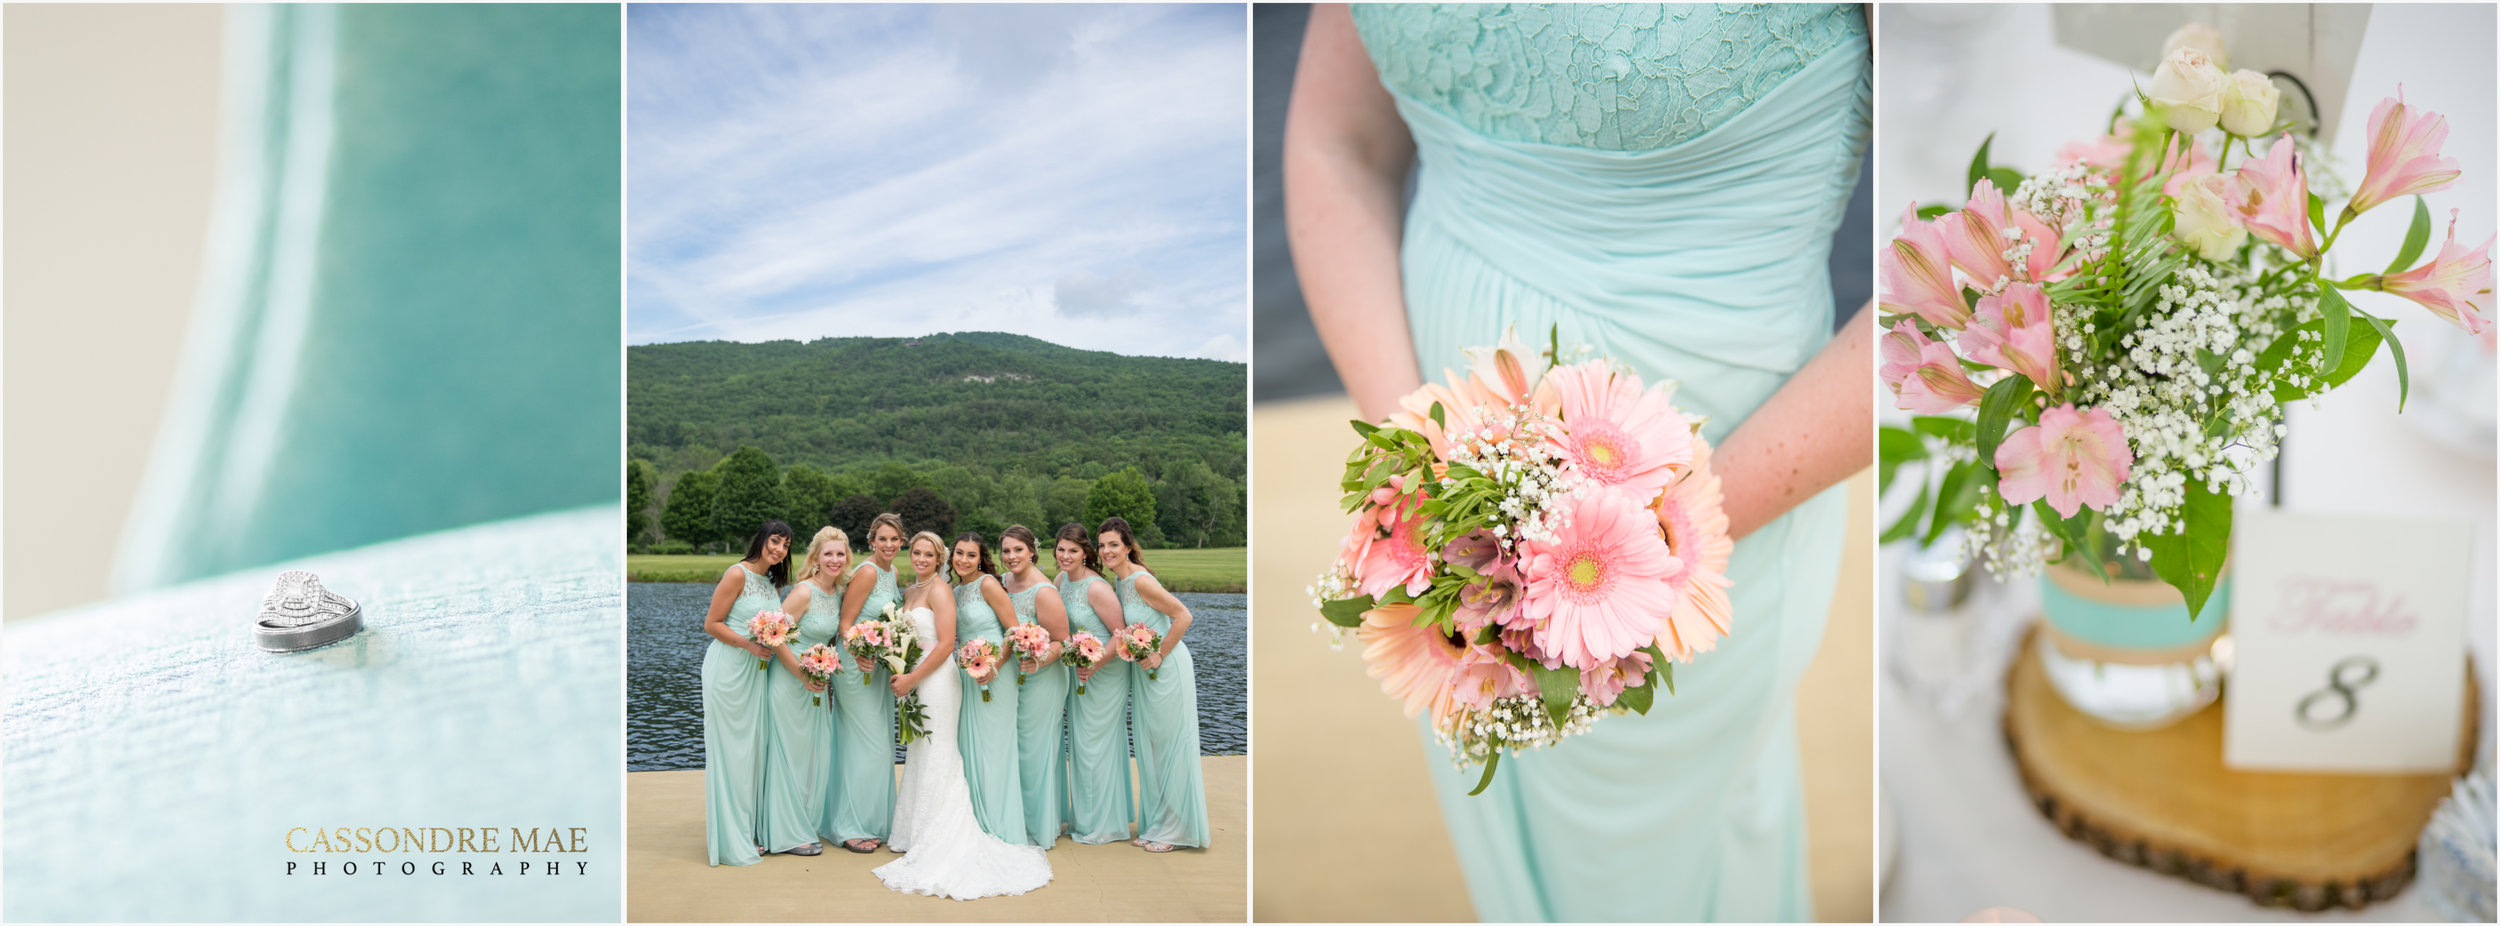 Cassondre Mae Photography Honors Haven Resort Wedding Photographer Hudson Valley NY